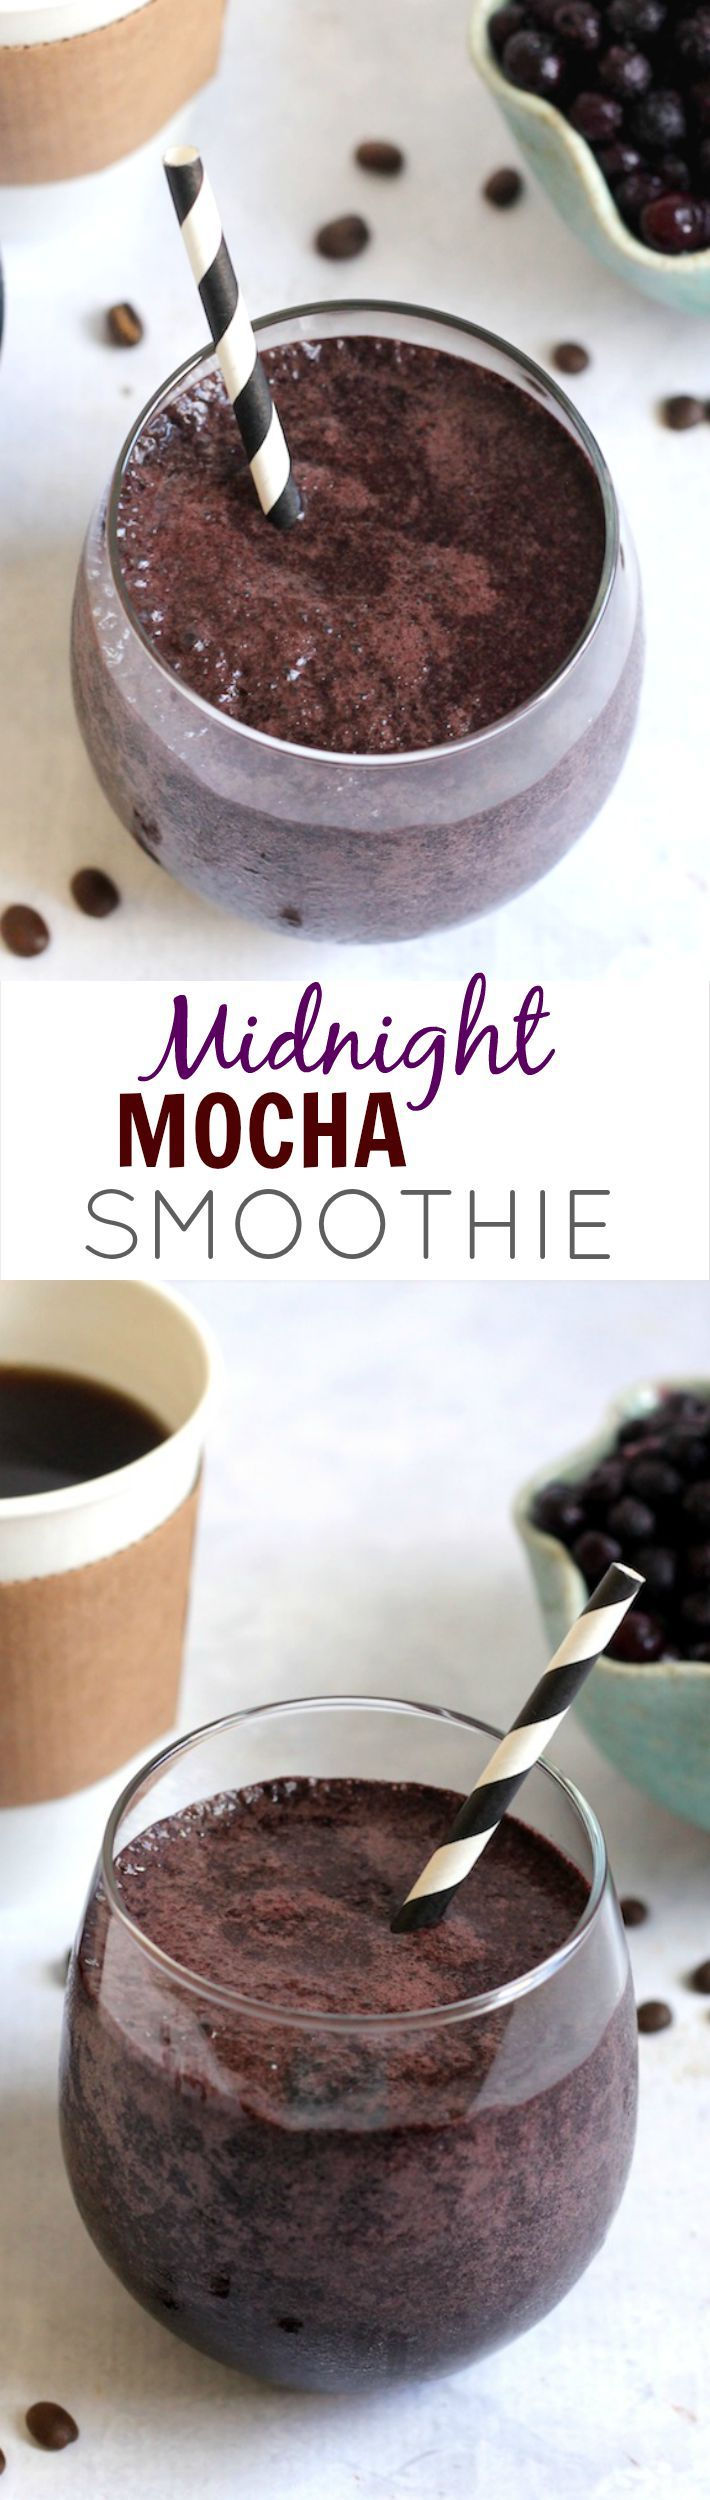 Midnight Mocha Smoothie-- A unexpectedly delicious superfood-packed smoothie with grapes, blueberries, coffee beans, spirulina, and raw cacao. Perfect for a quick, nutrient-dense breakfast!